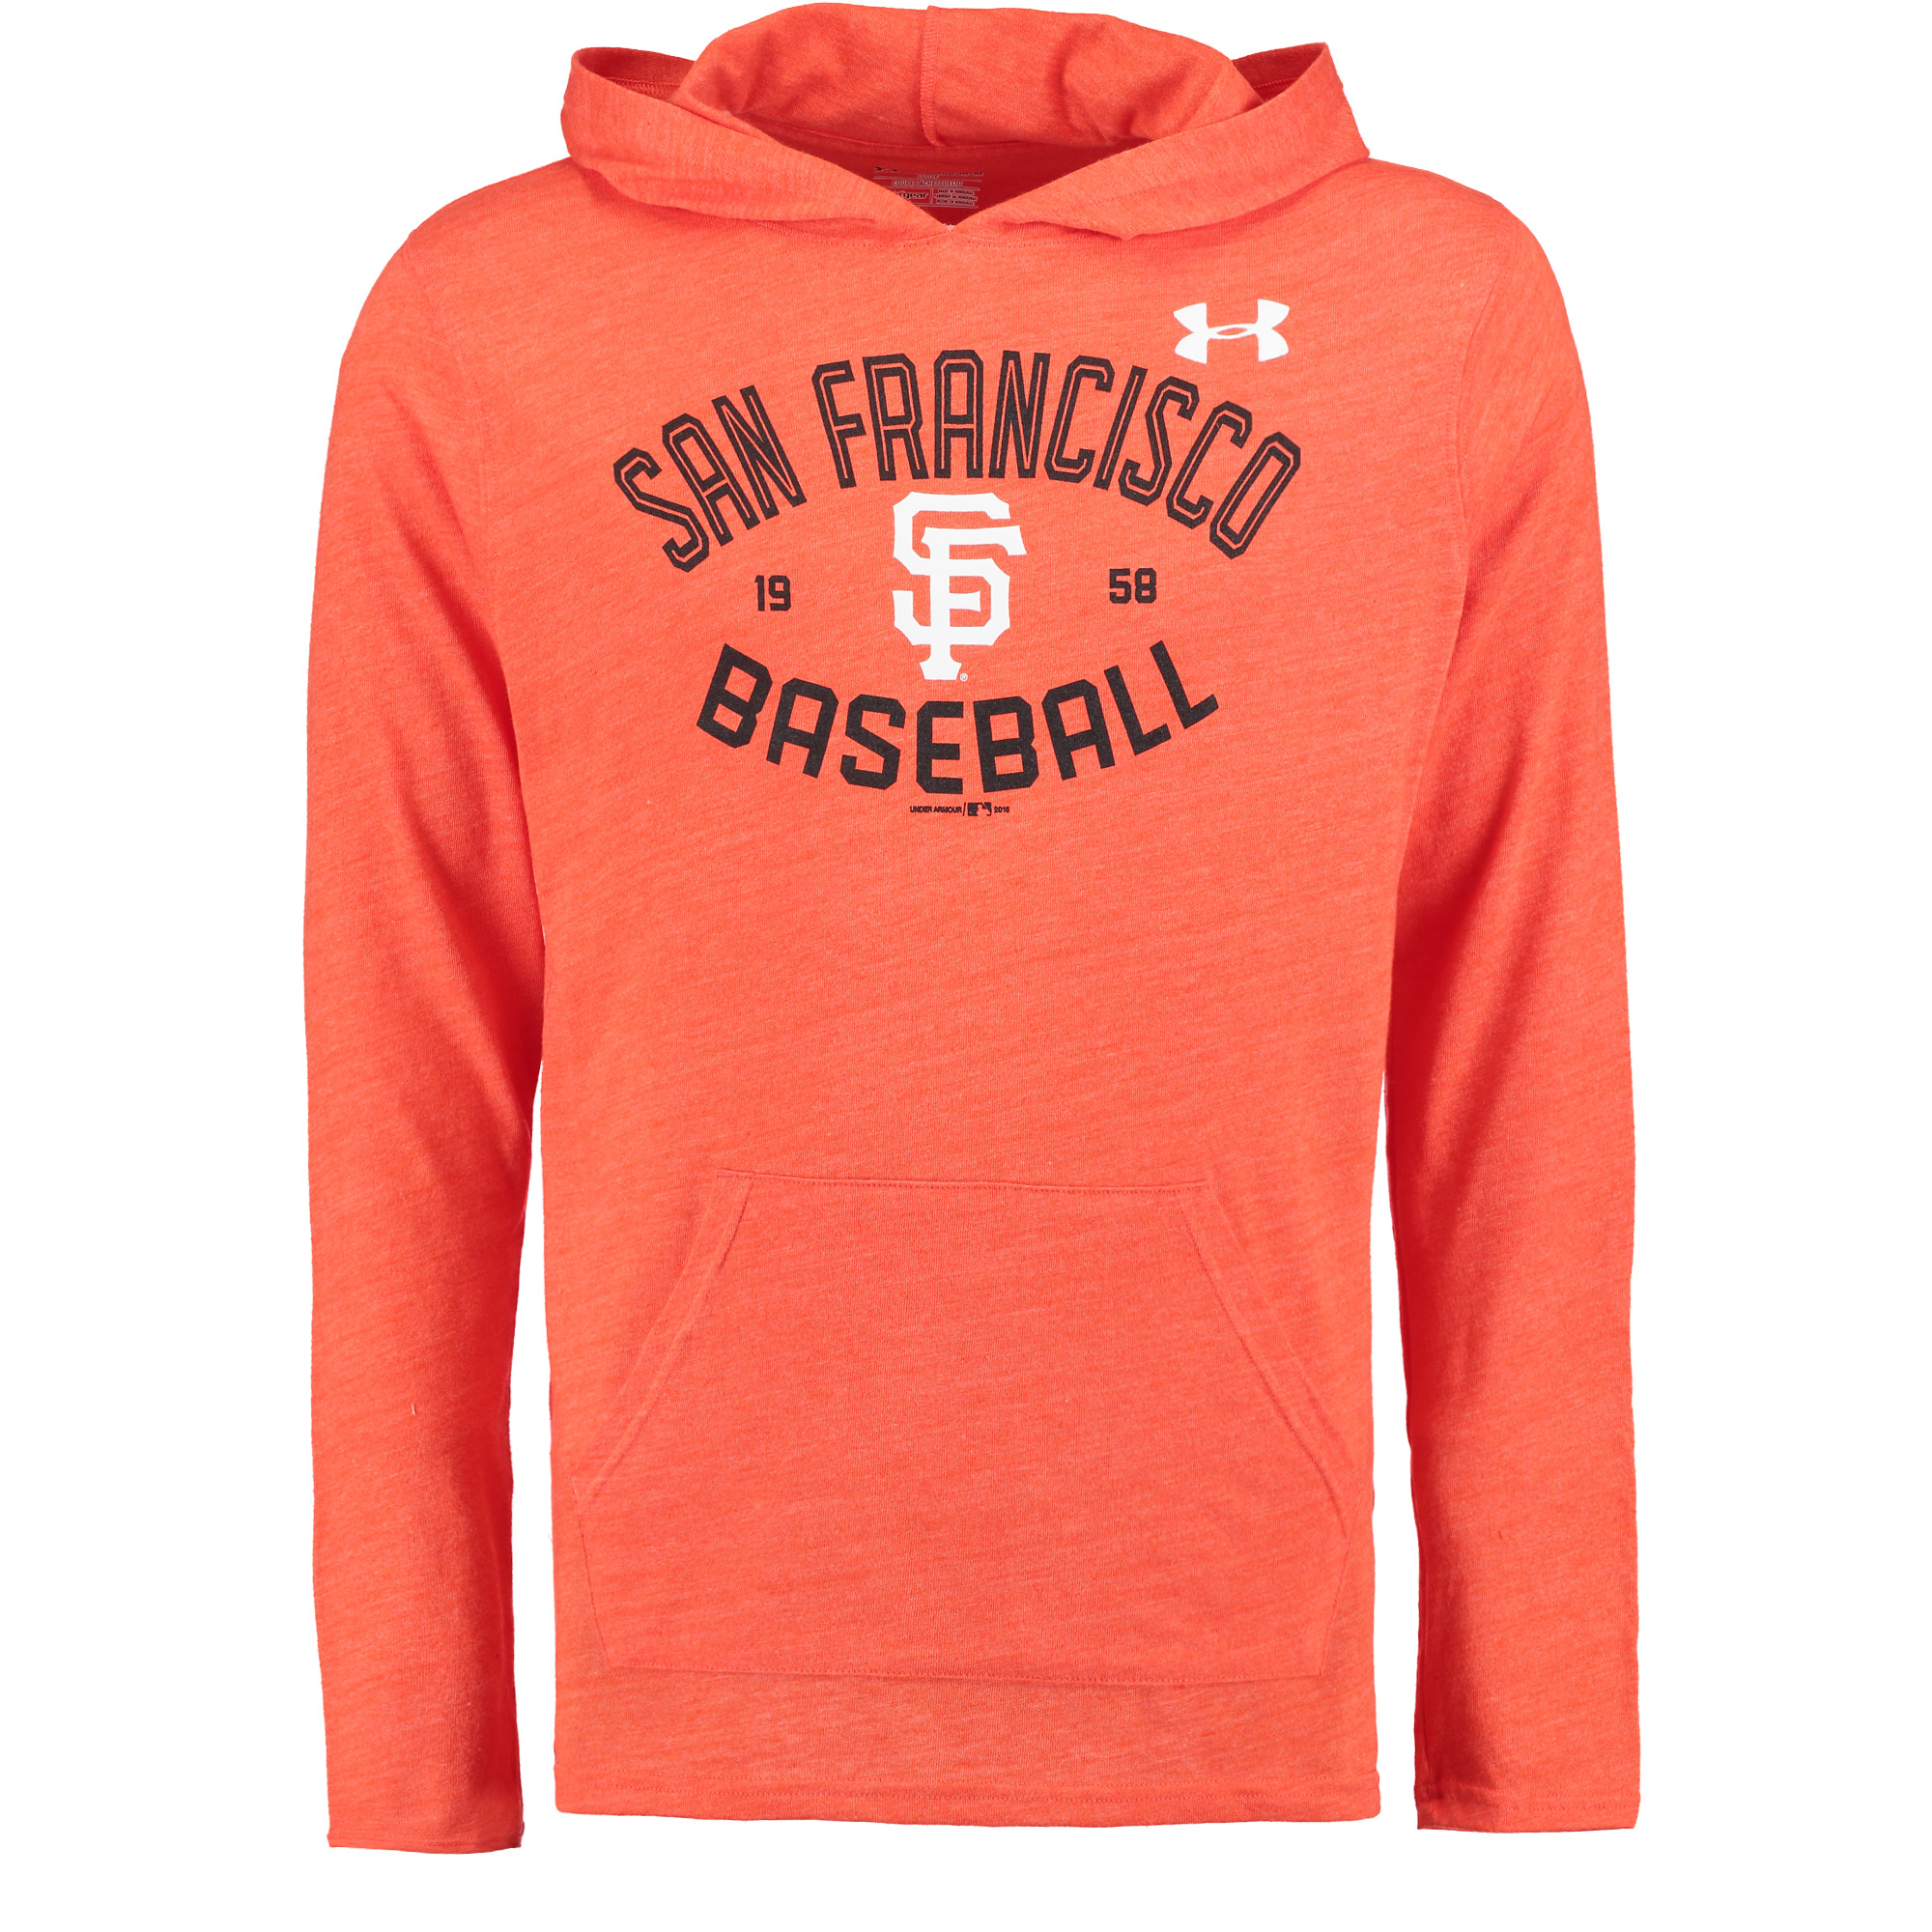 San Francisco Giants Under Armour Tri-Blend Pullover Performance Hoodie - Orange